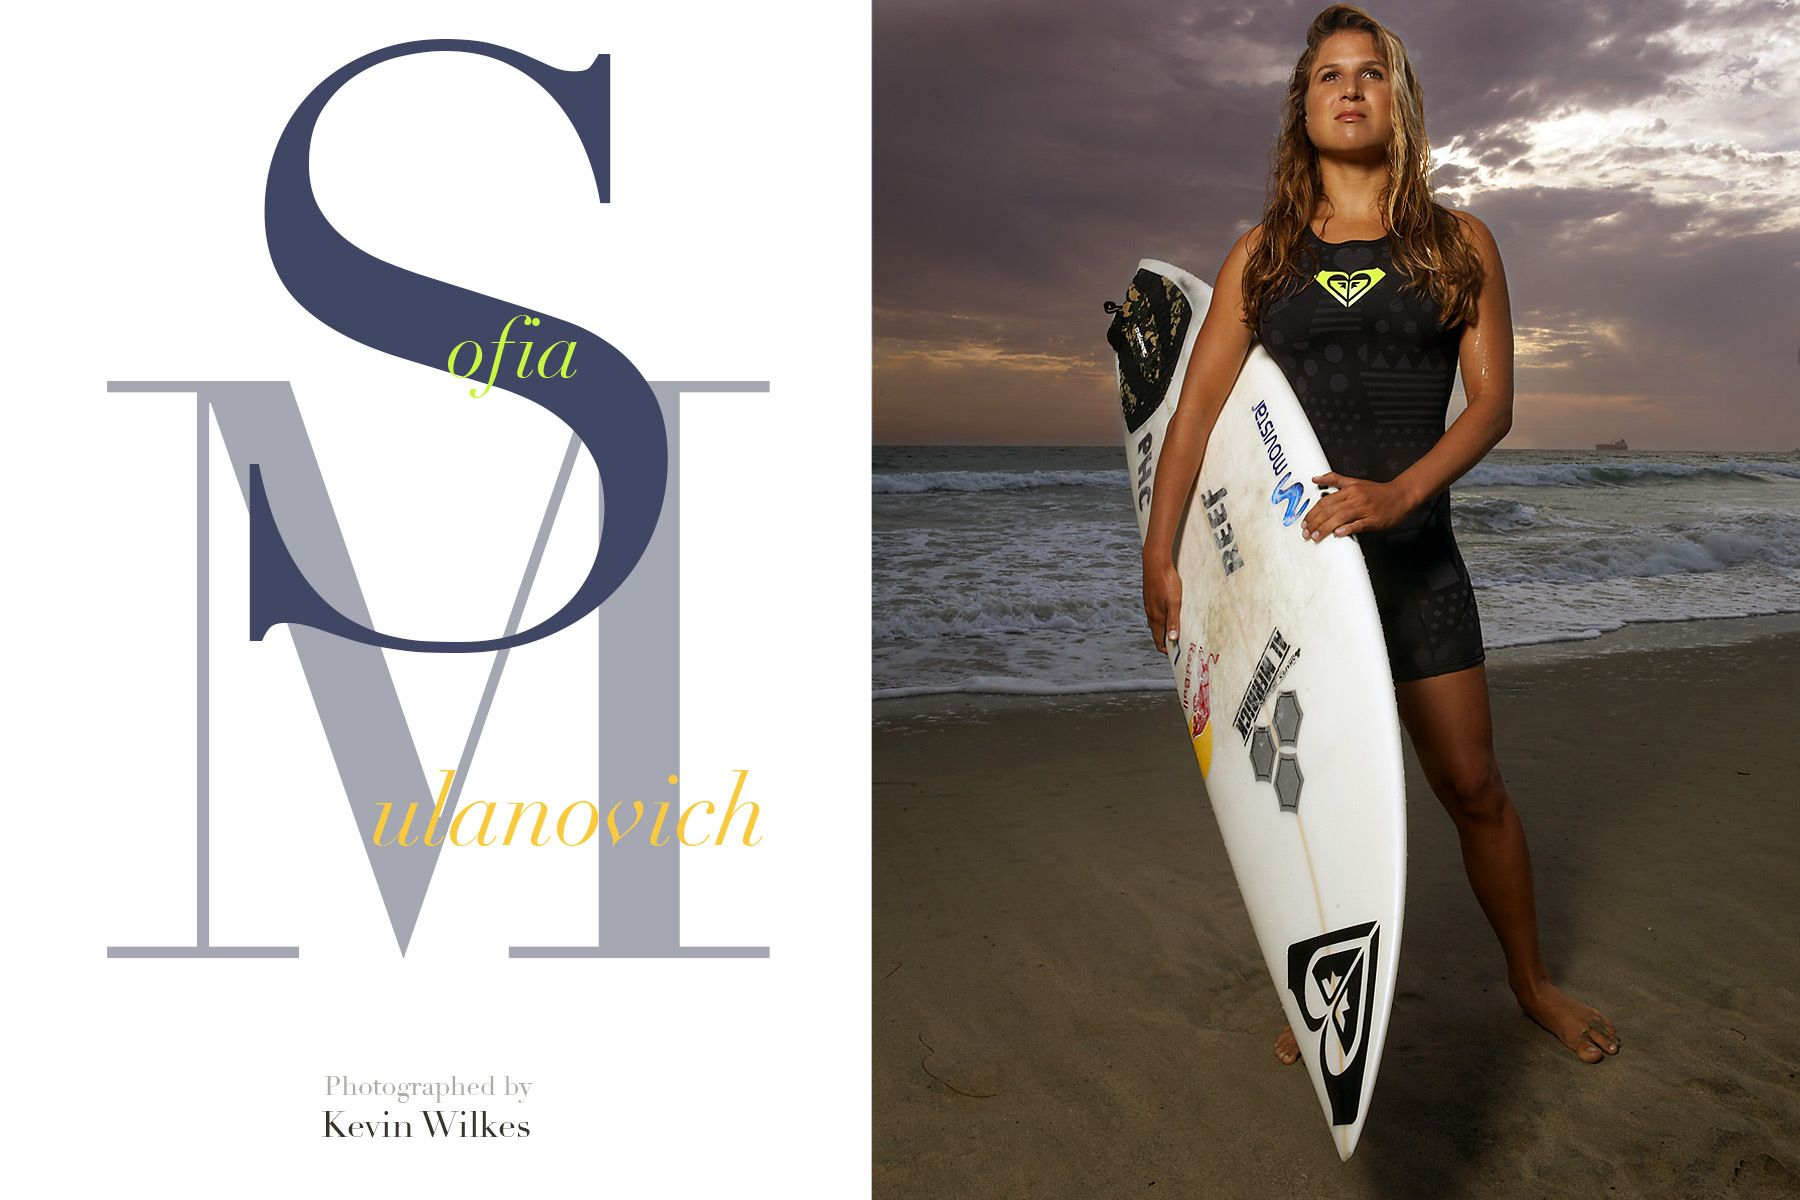 Sofia Mulanovich. 2 Time WCT Womens Surfing champion.